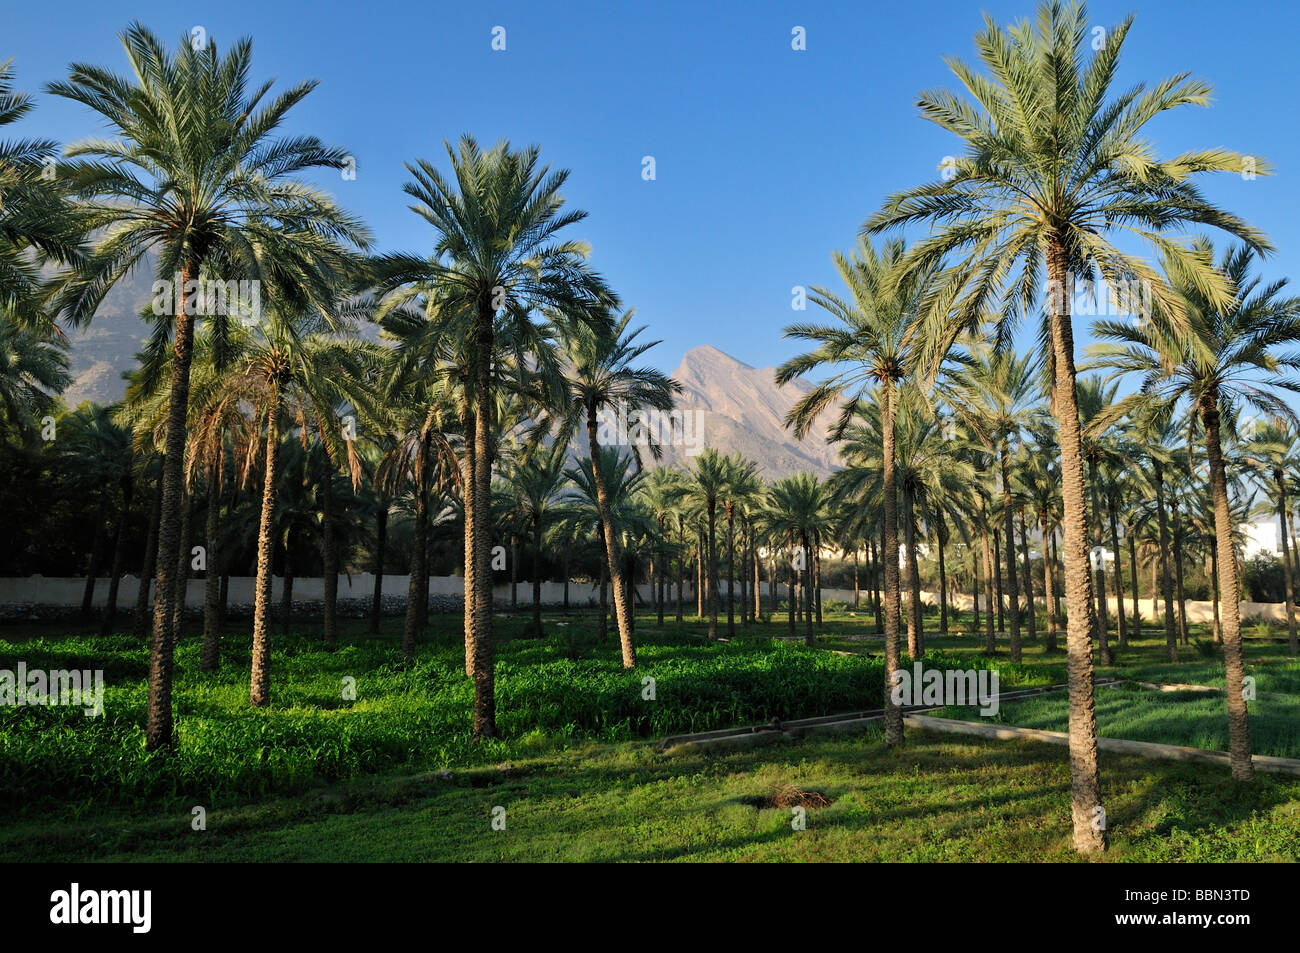 middle eastern singles in palm beach gardens Fun things to do in west palm beach include visiting the norton museum of art and seeing tropical plants from six continents  the ann norton sculpture gardens,.